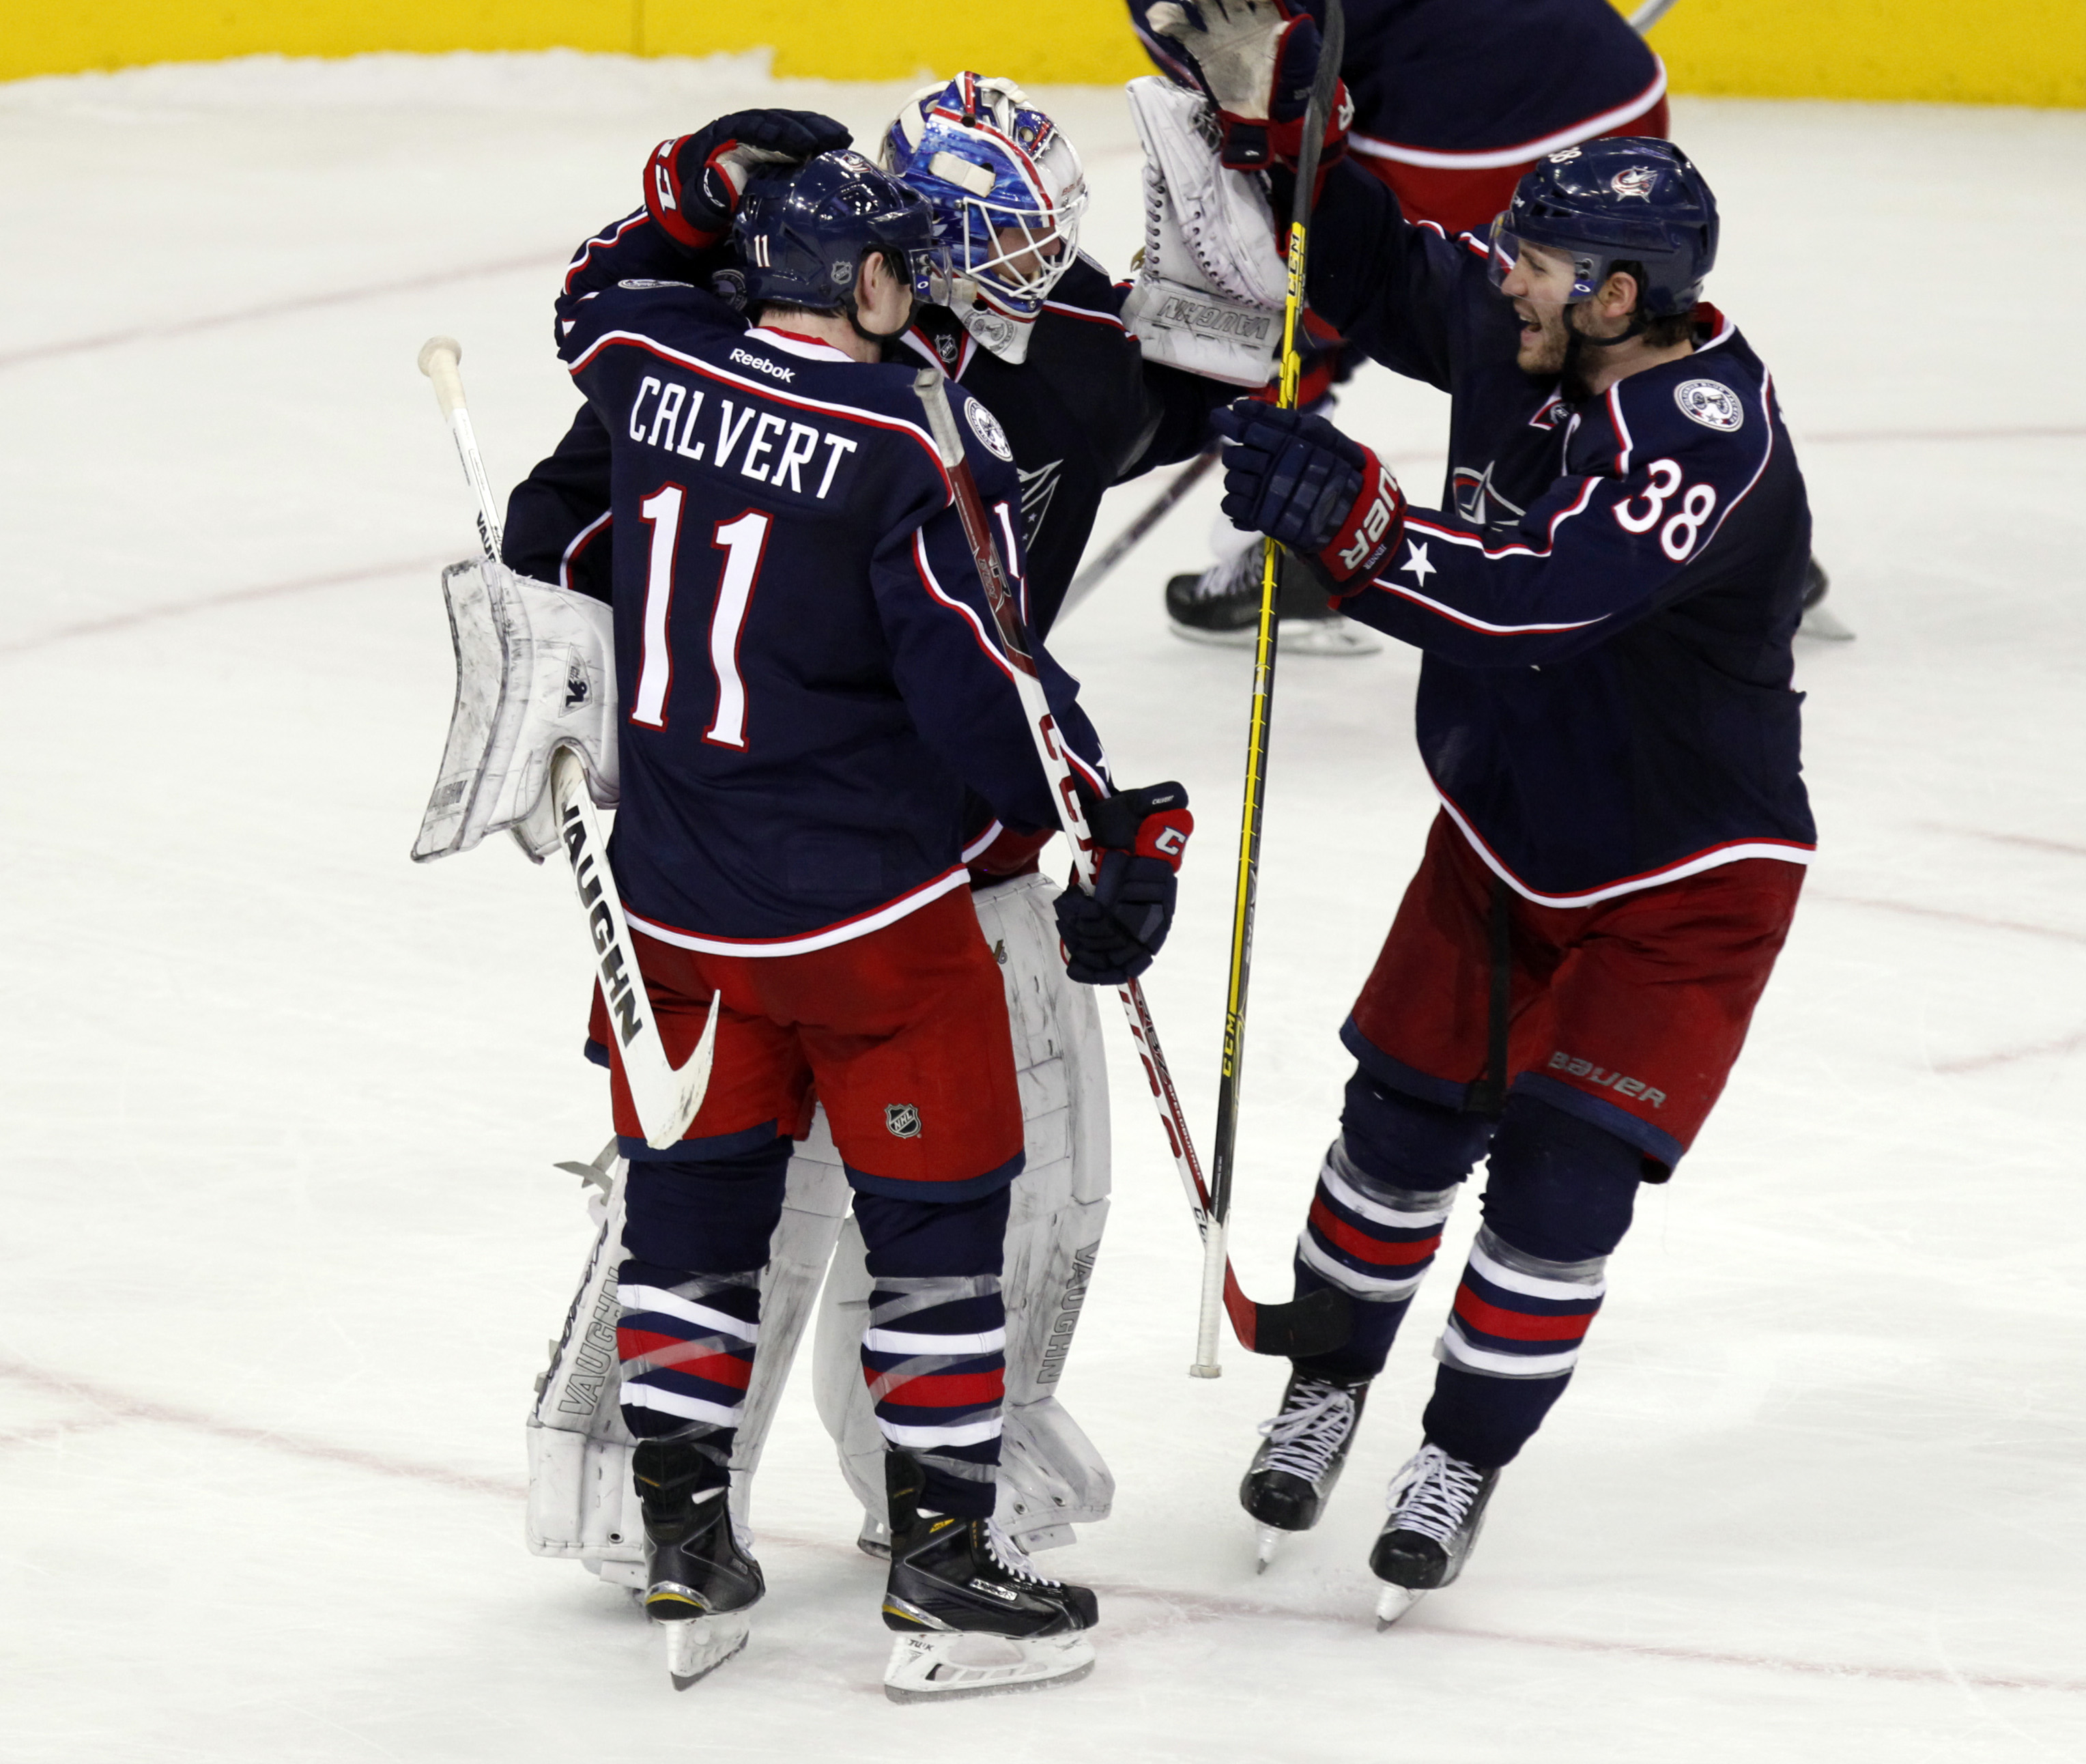 Columbus Blue Jackets' Matt Calvert, left, goalie Joonas Korpisalo, of Finland, and Boone Jenner celebrate after Korpisalo stopped a shot by Philadelphia Flyers' Brayden Schenn in a shoot out during an NHL hockey game in Columbus, Ohio, Saturday, Dec. 19,